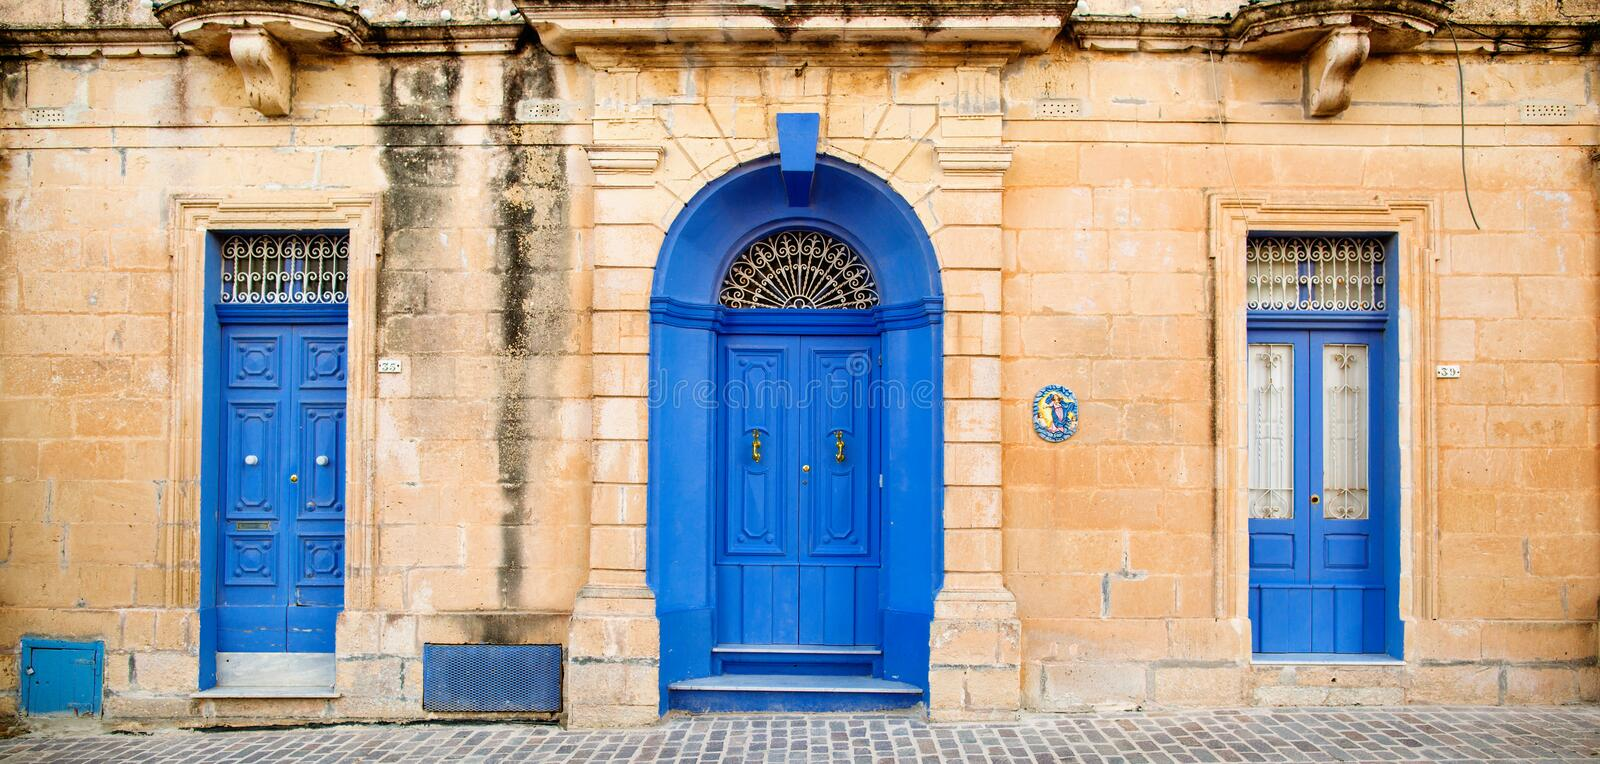 Download Blue Windows and doors stock photo. Image of detail, malta - 88164402